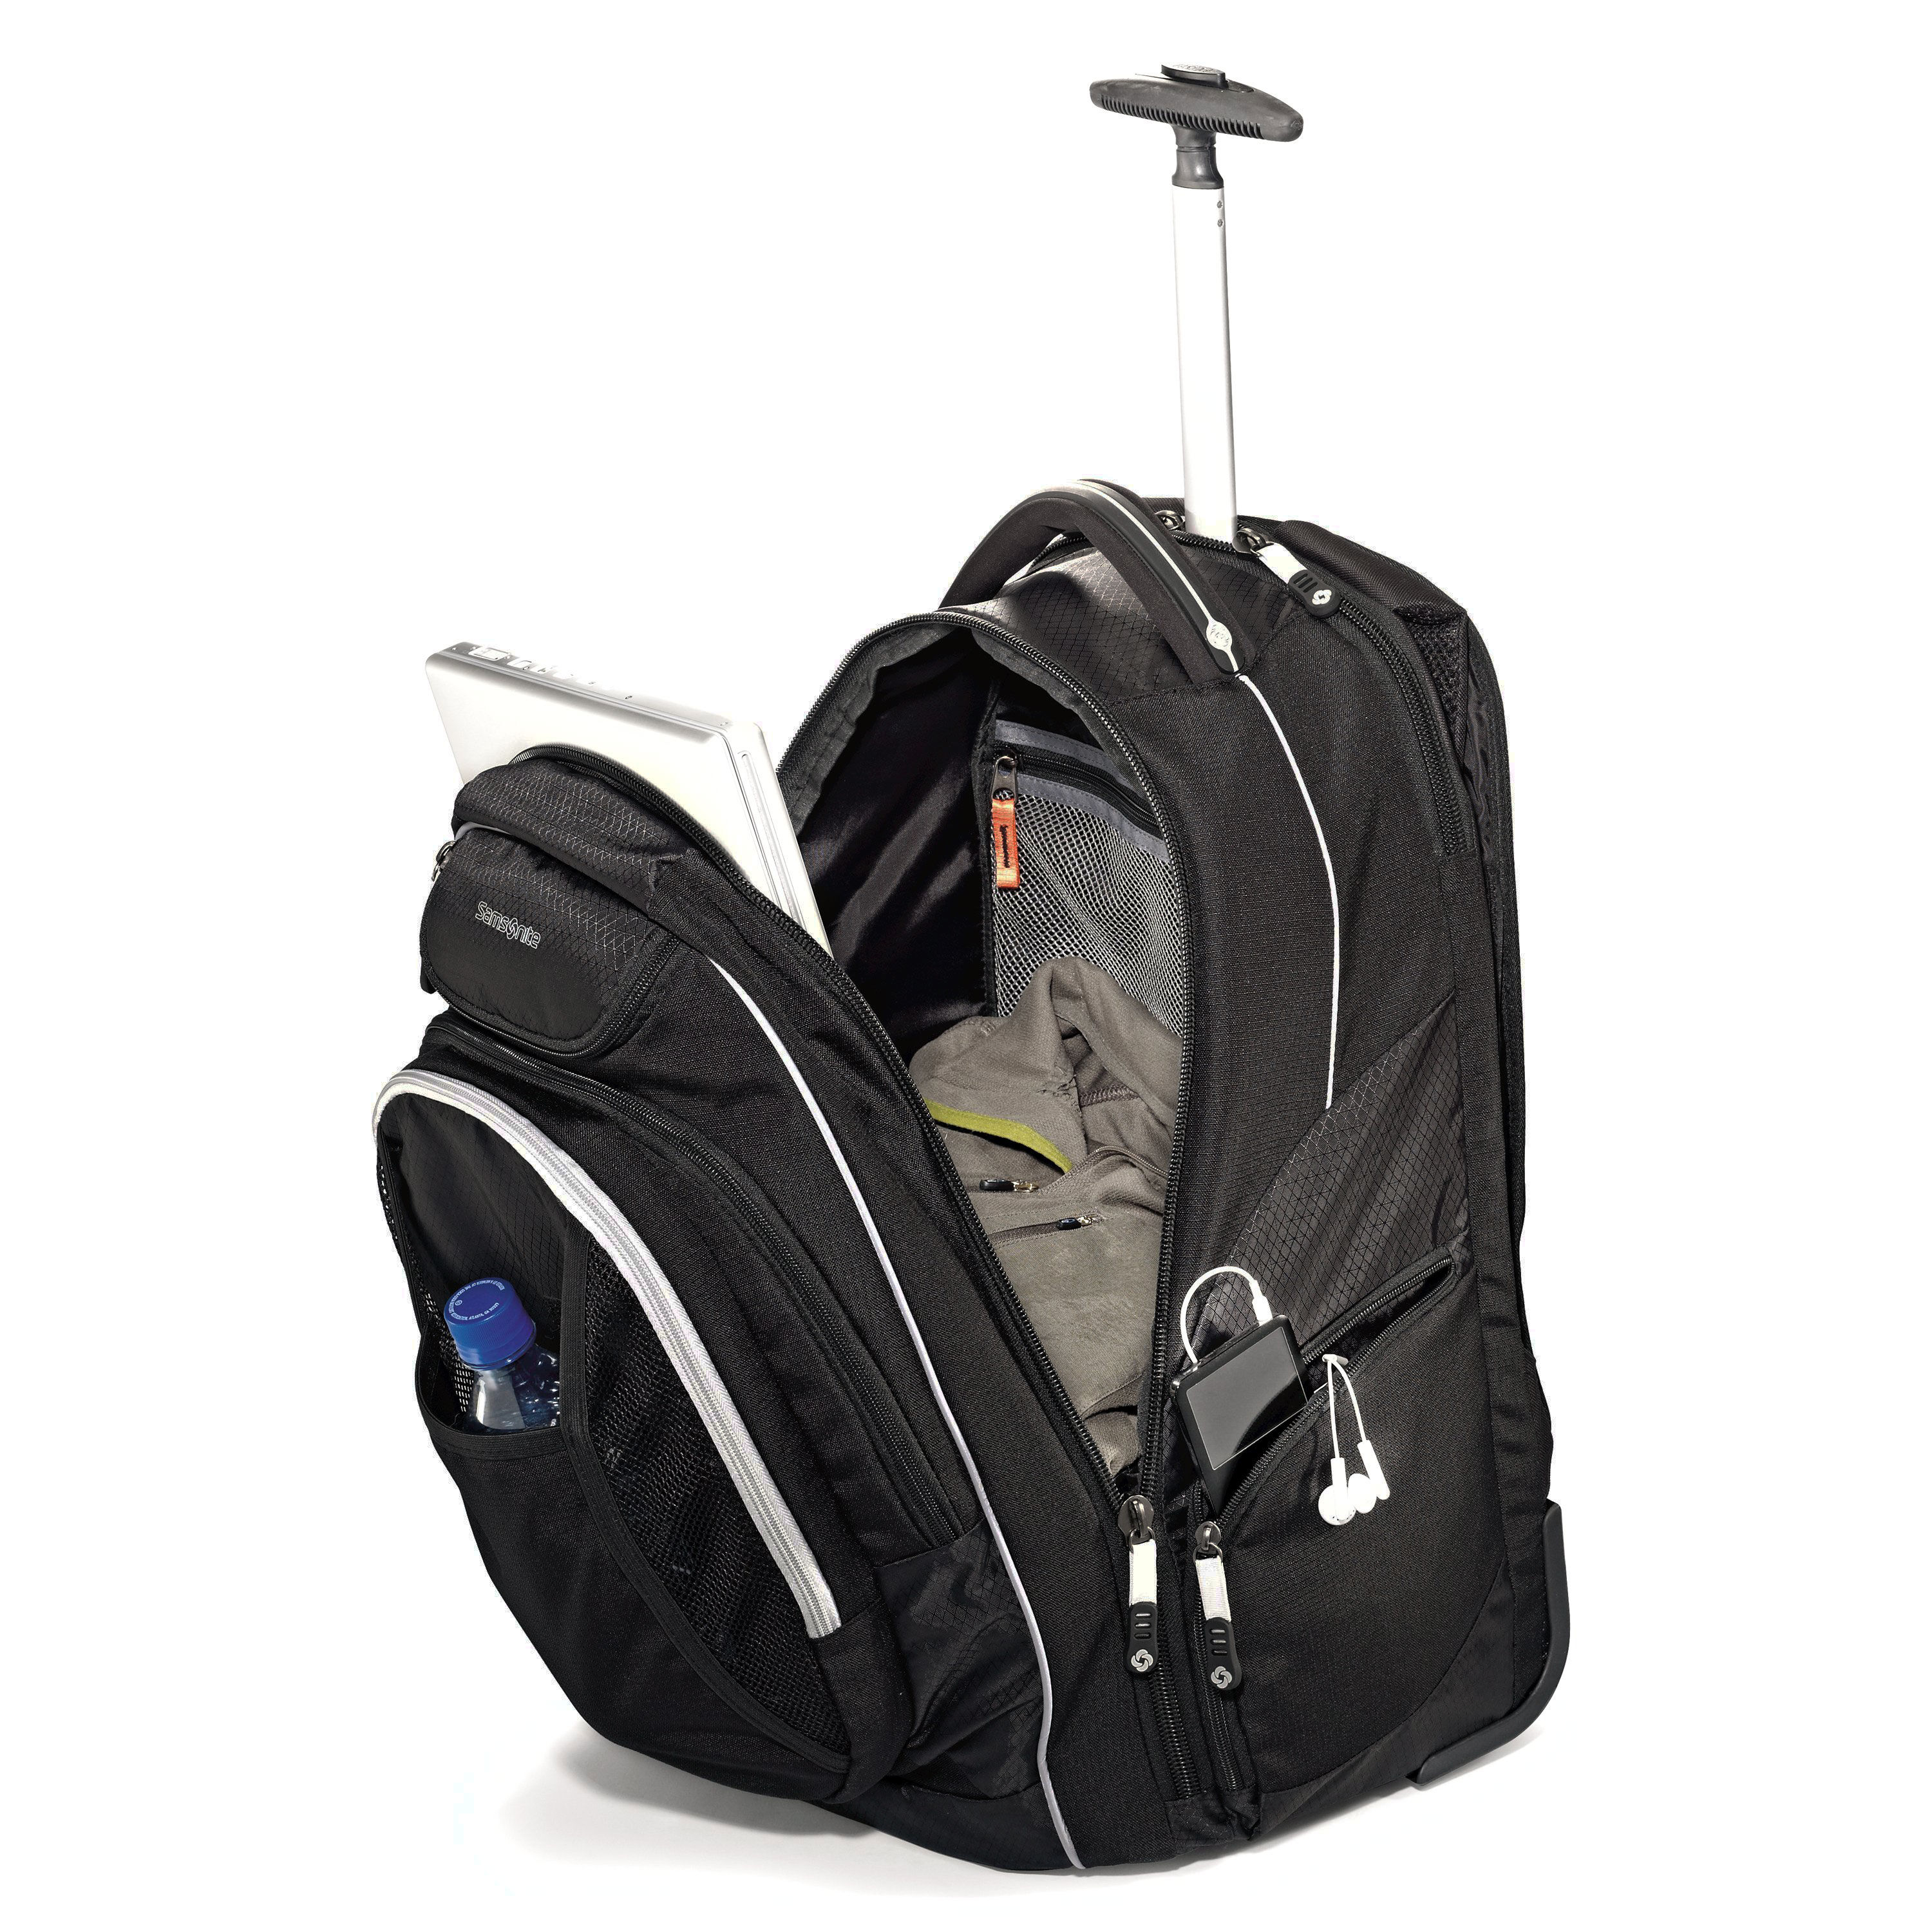 Travel Backpack With Wheels xWAhyznr